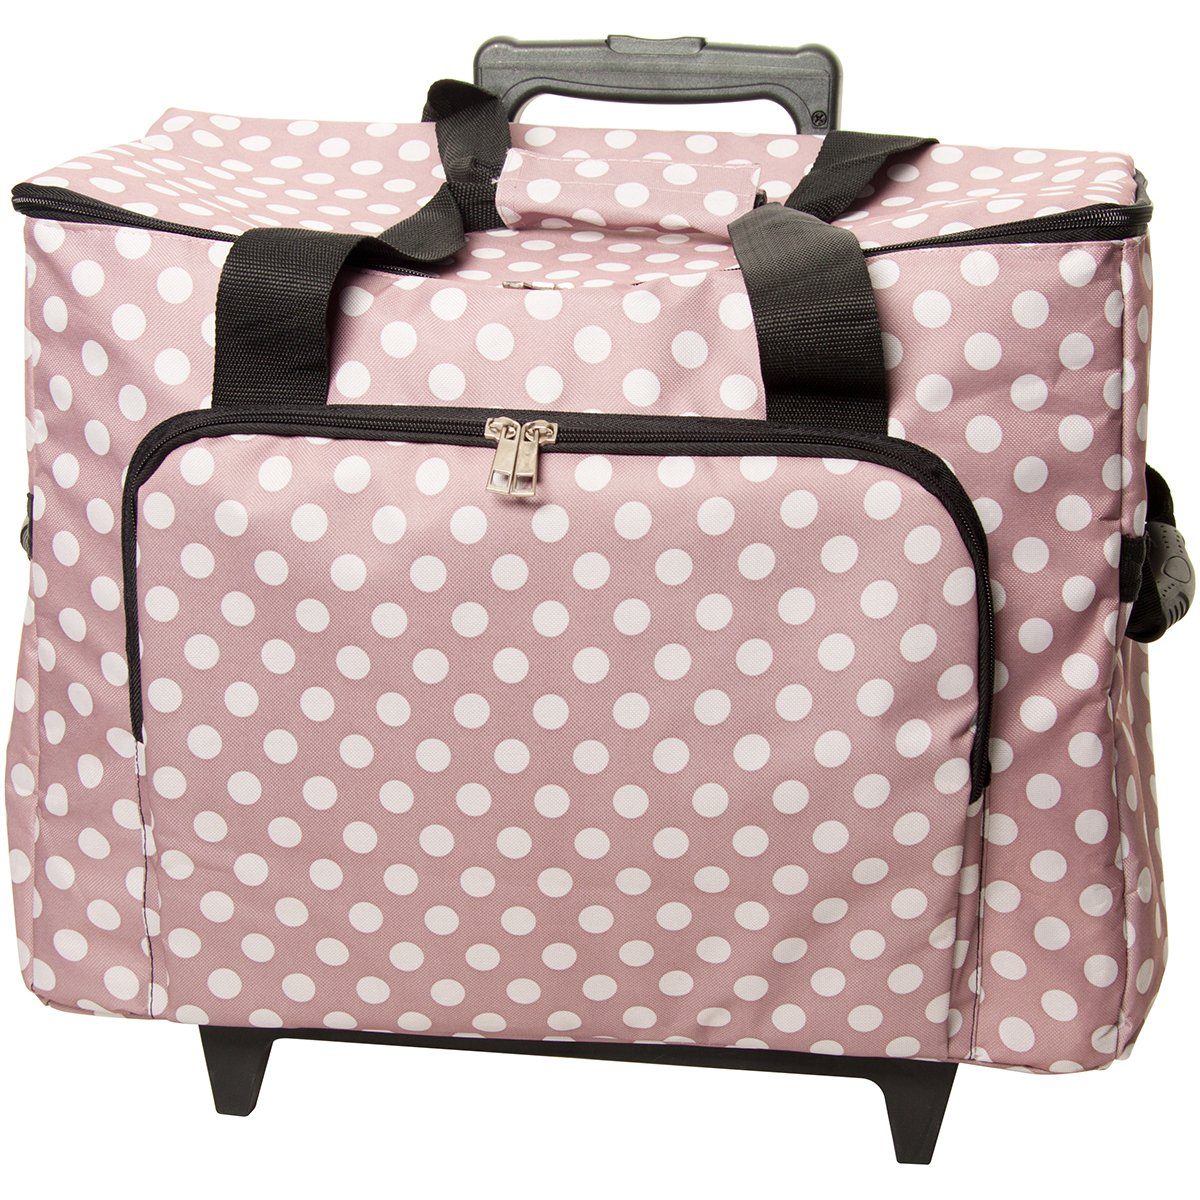 HobbyGift MRTB.006 | Sewing Machine Trolley Bag | Mauve Spot by Tacony Corporation: Amazon.es: Hogar